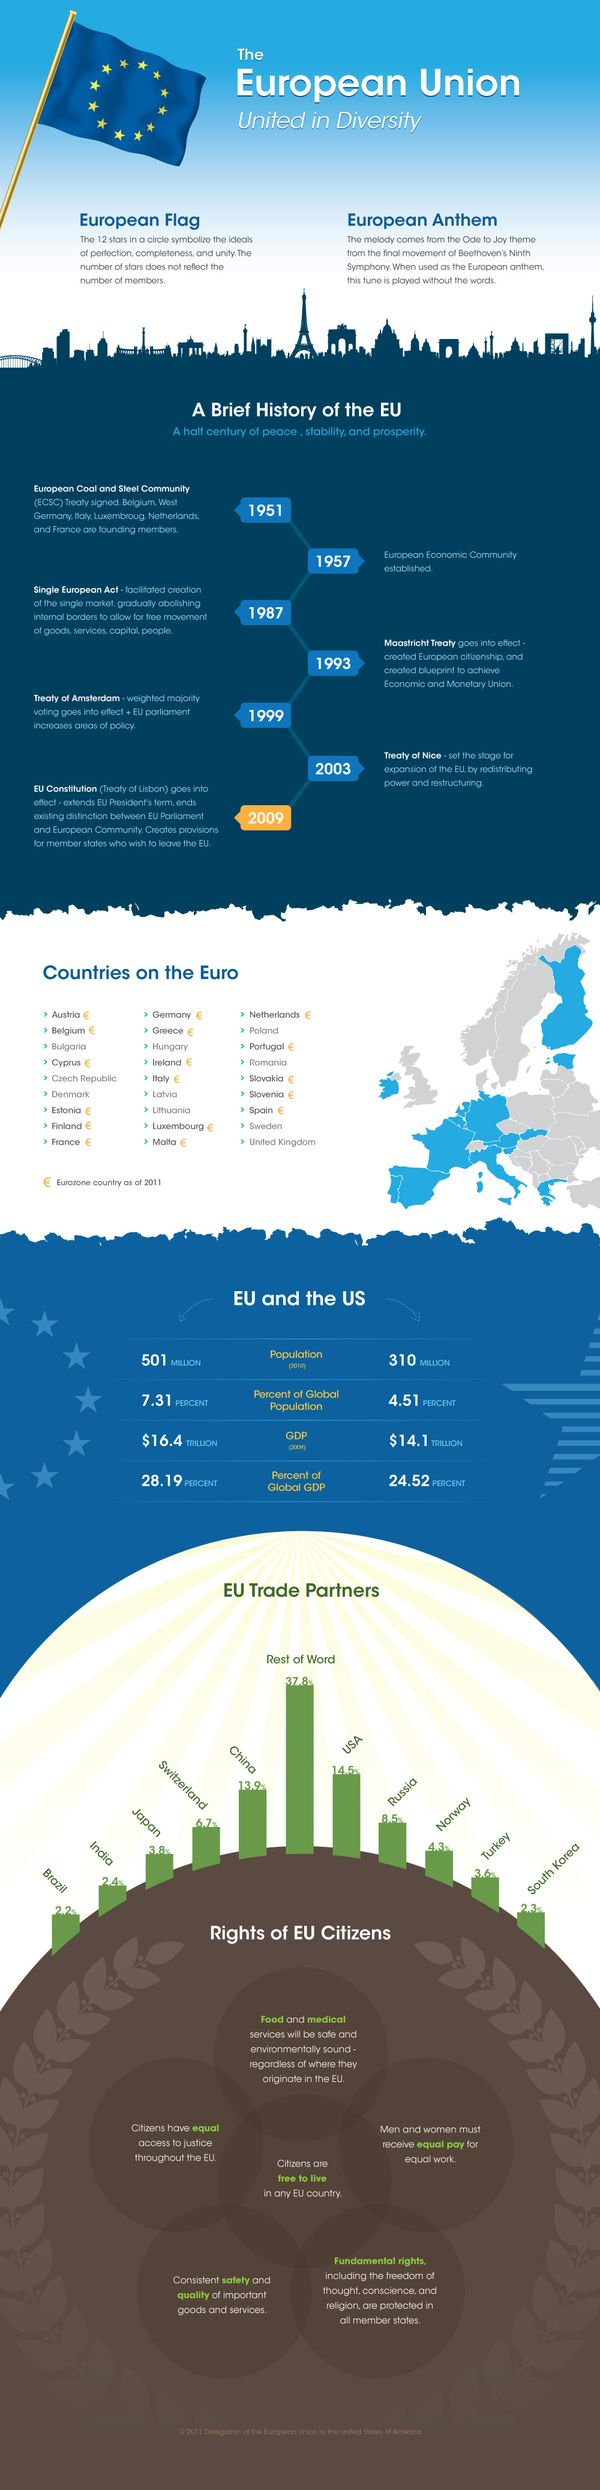 A brief history of the European Union. #Infography